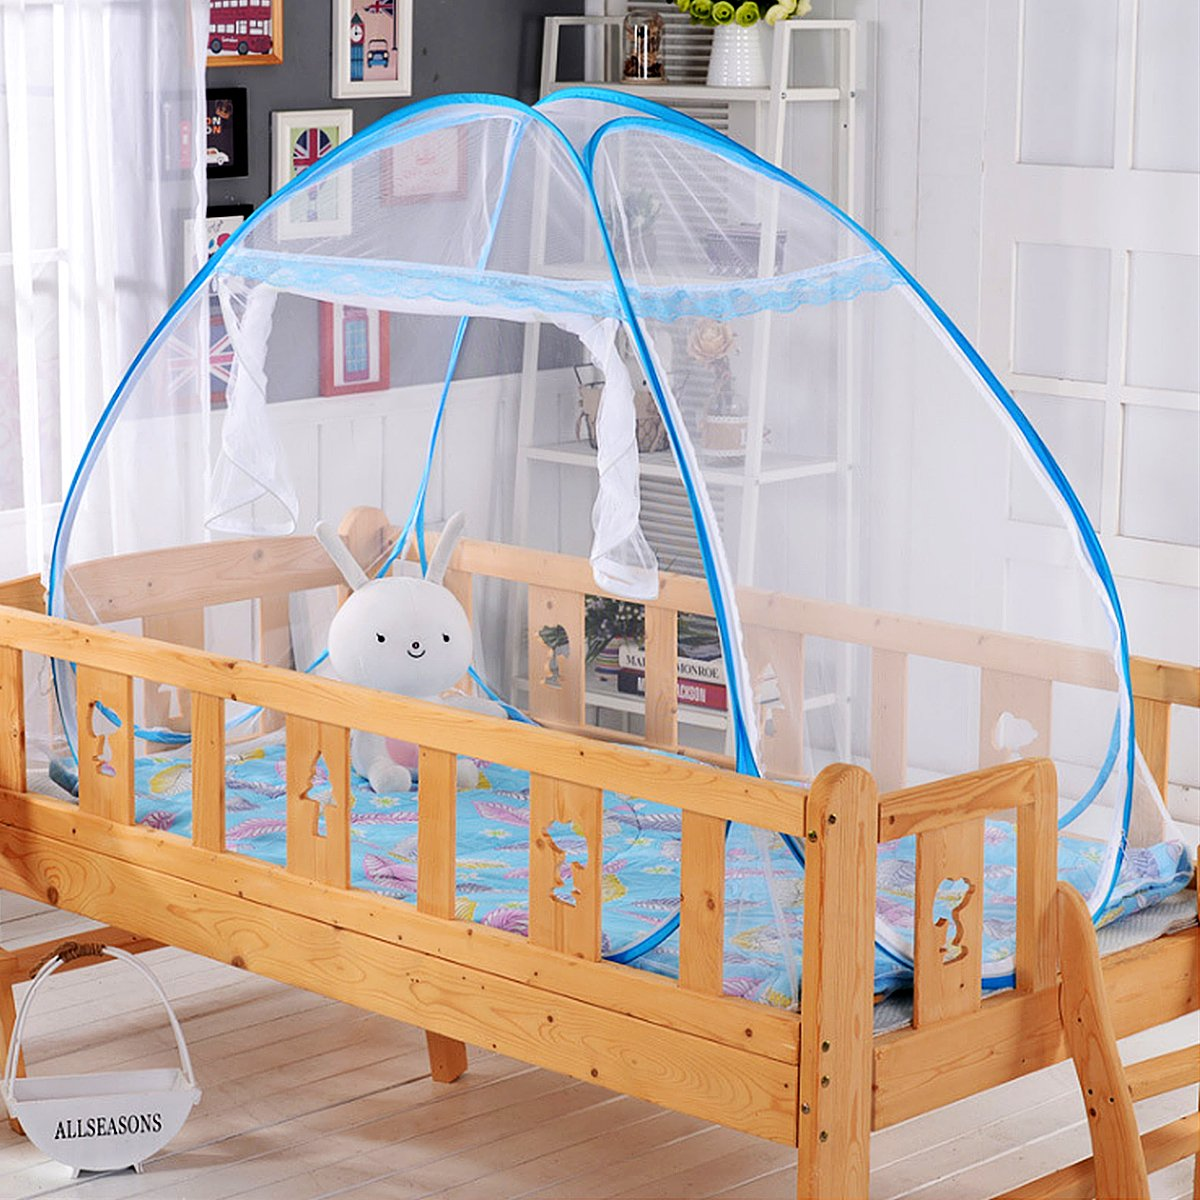 DATONG Pop-Up Mosquito Net Tent for Beds Anti Mosquito Bites Folding Design with net Bottom for Babys Student Trip (66.14x34.64x35.4 inches)